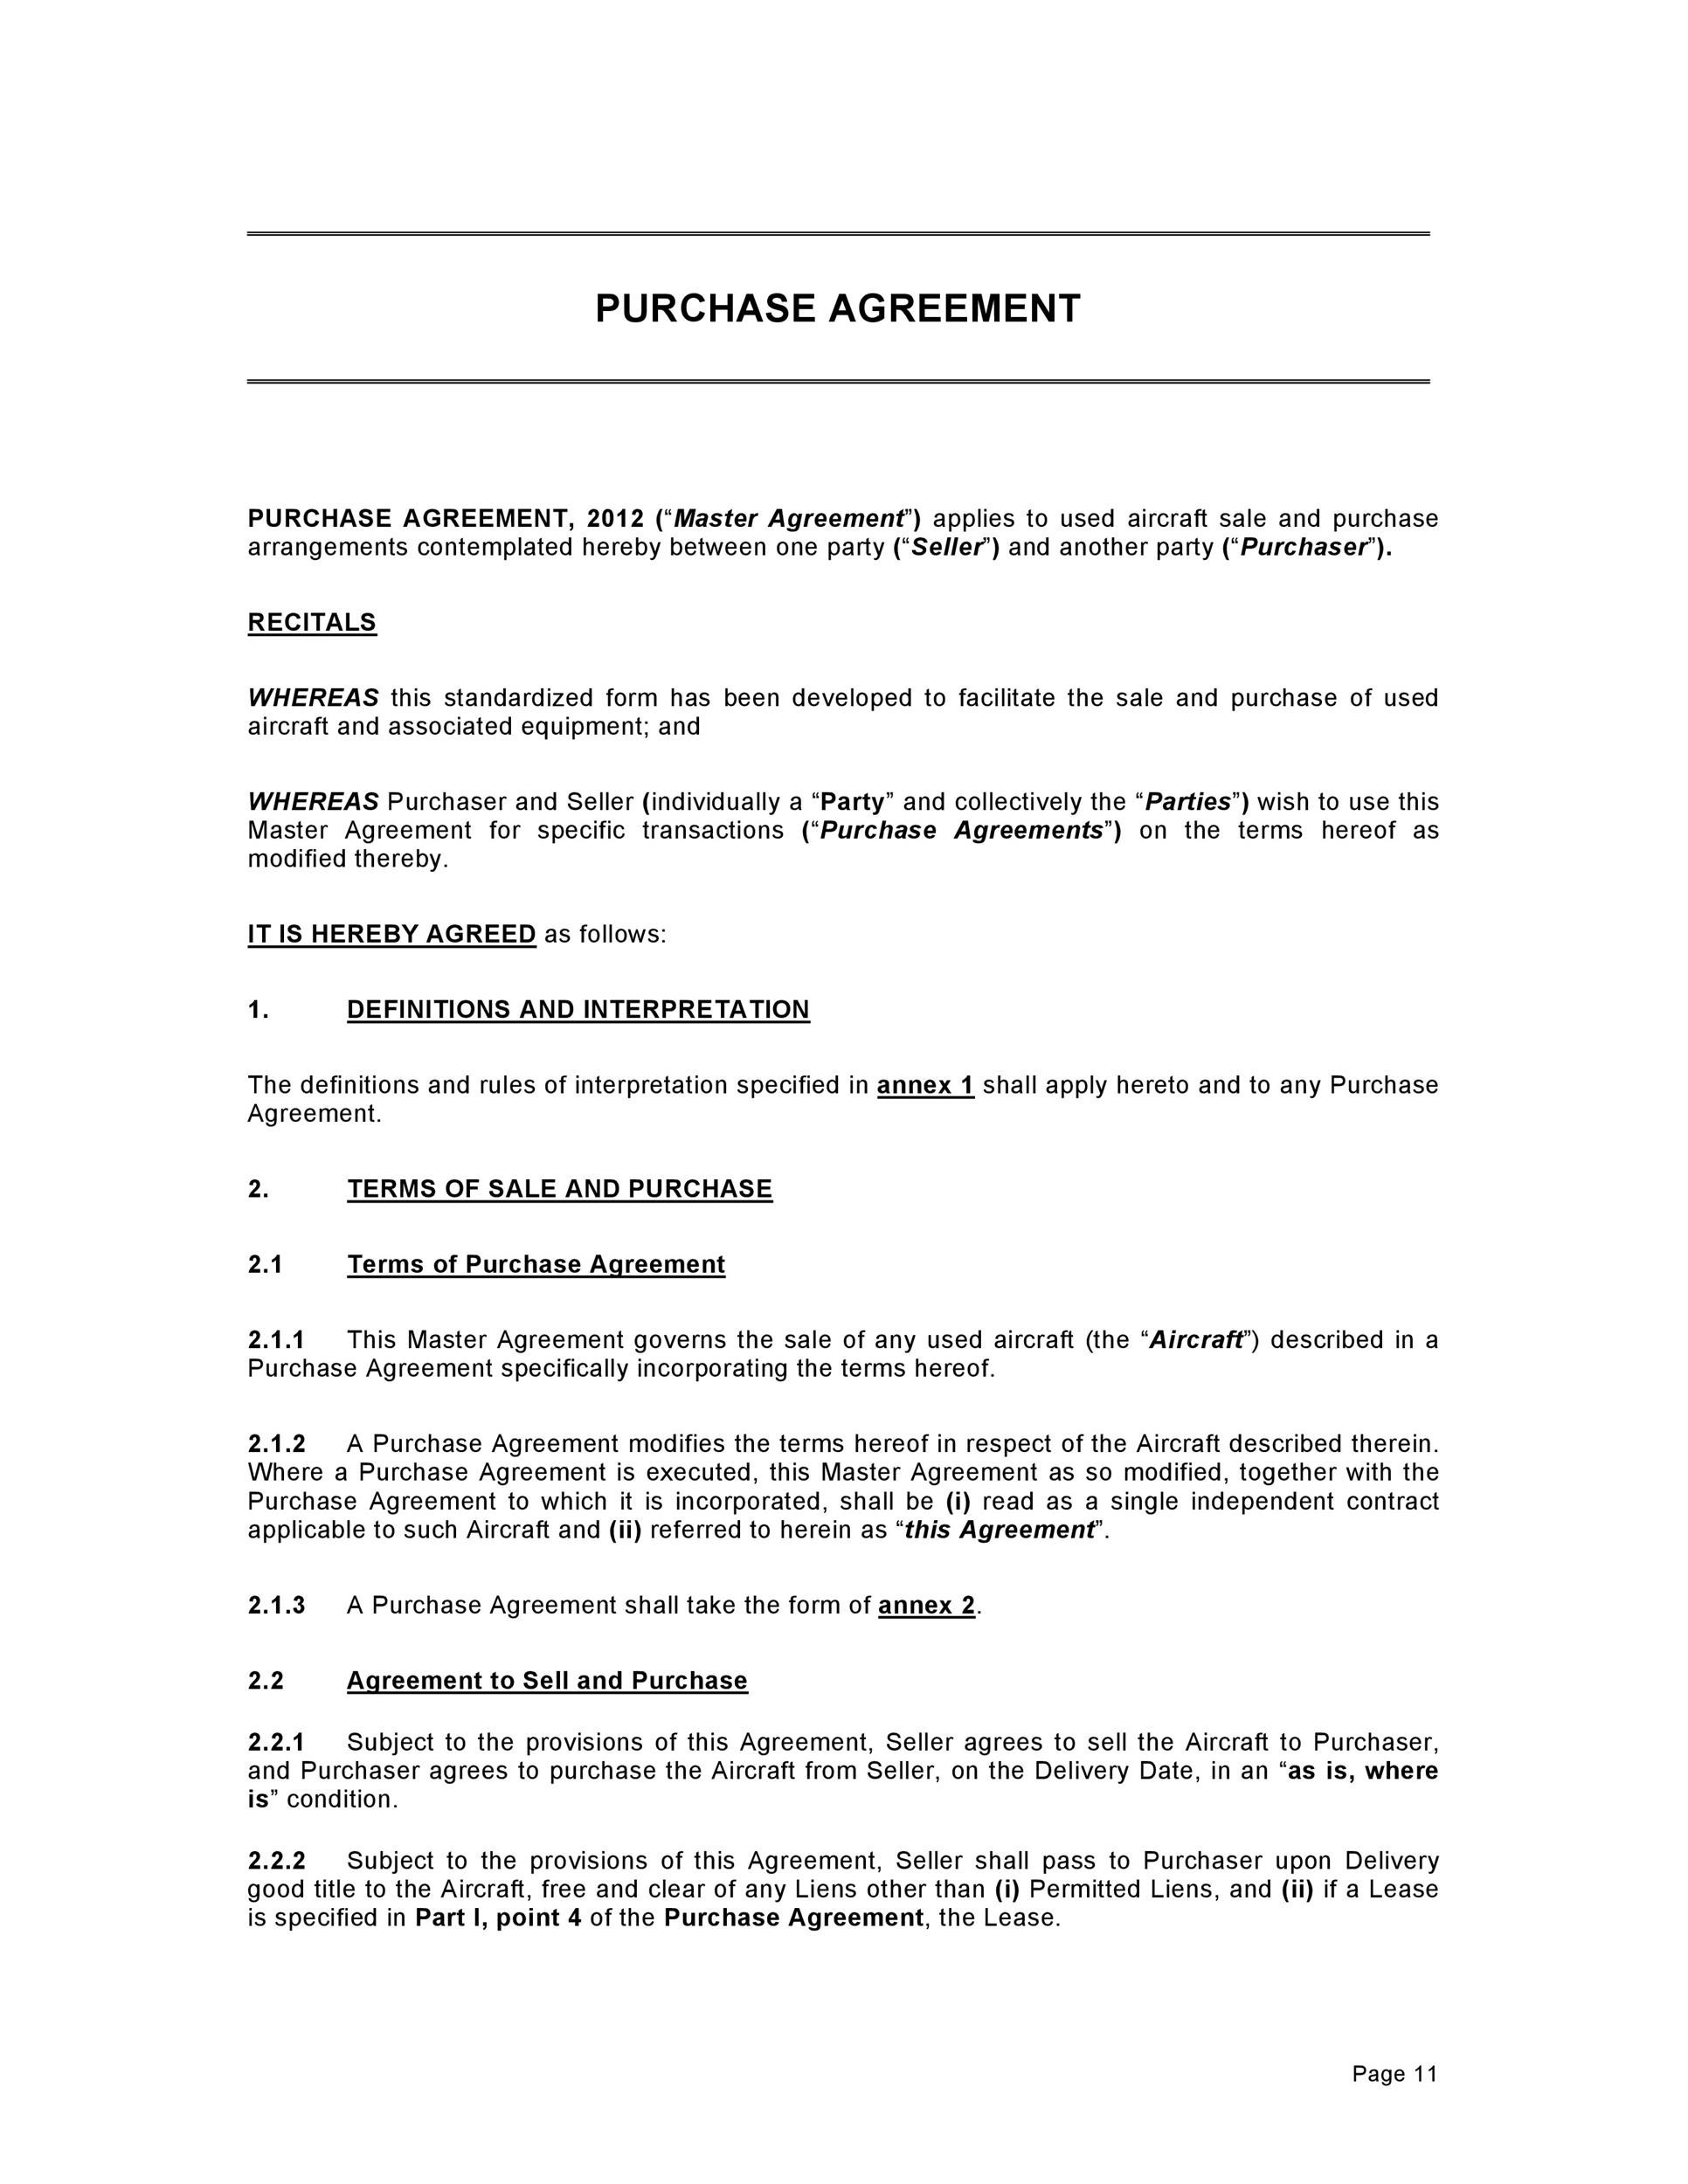 Business Agreement Contract Sample Business Contract Between Two